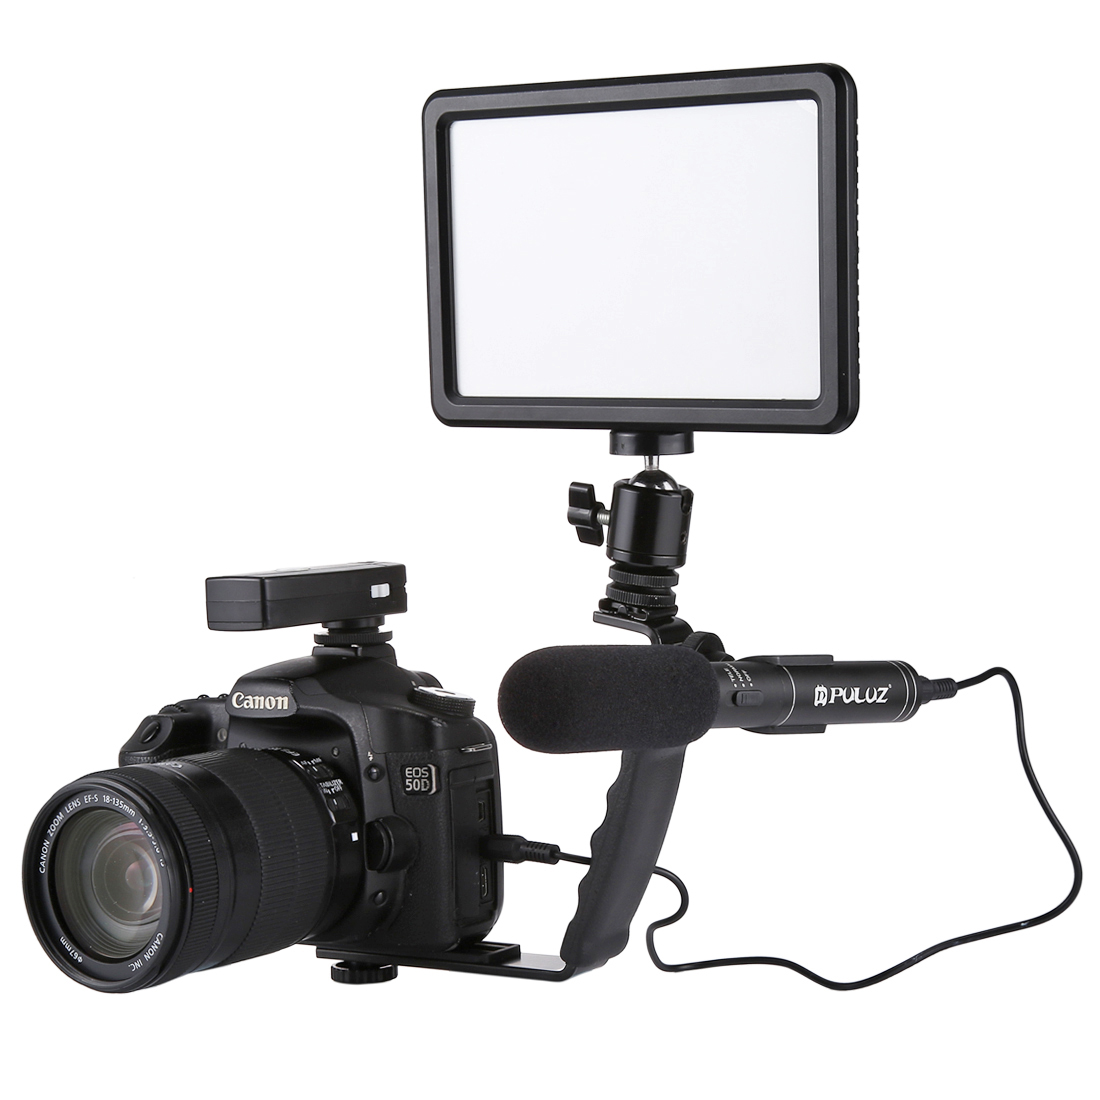 PULUZ PU3012 Professional Interview Condenser Video Microphone with 3.5mm Audio Cable for DSLR DV